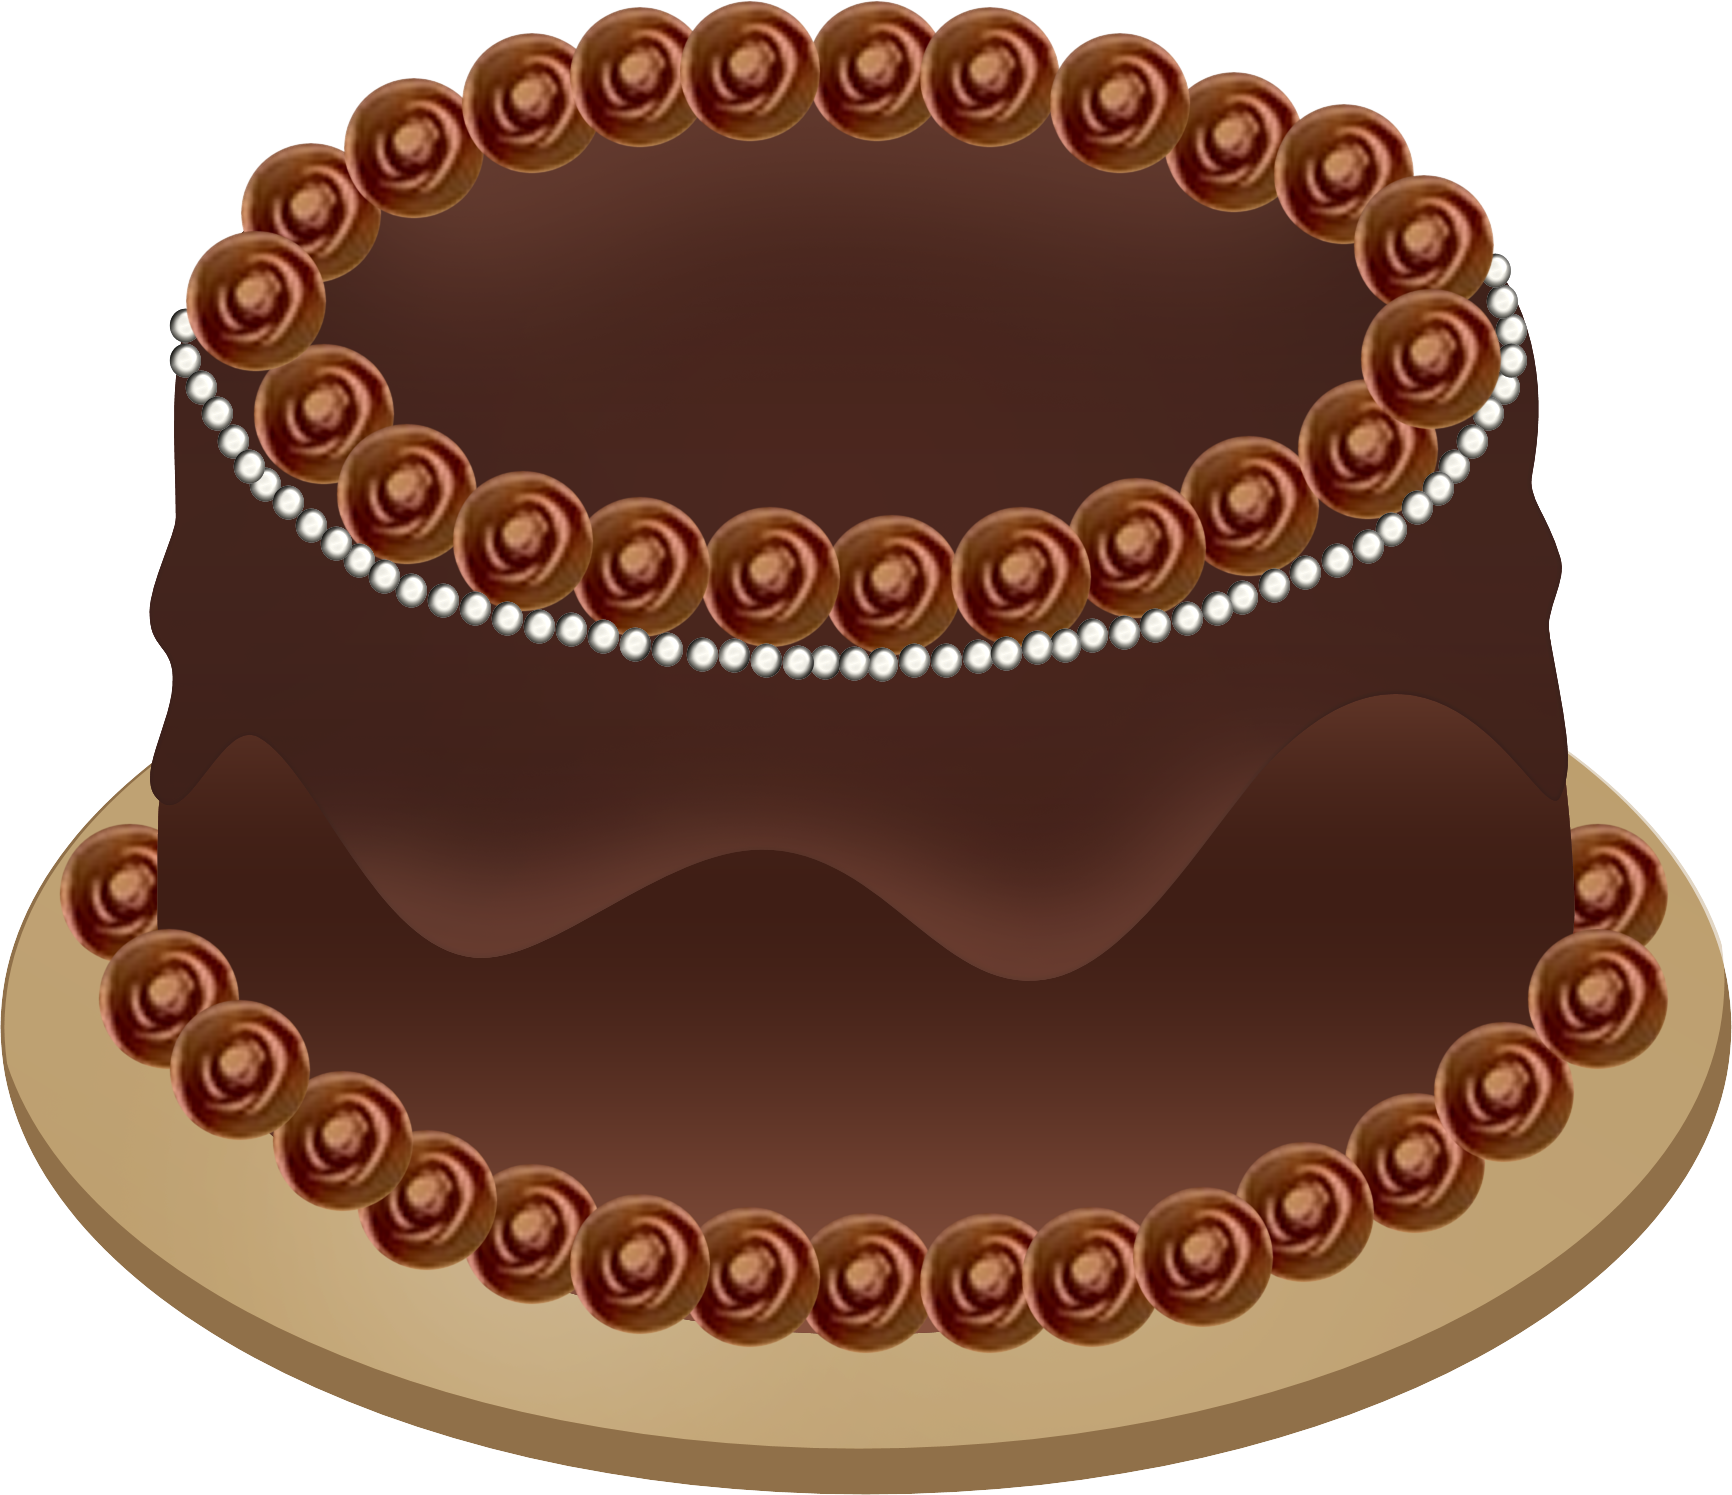 Chocolate cake clipart png.